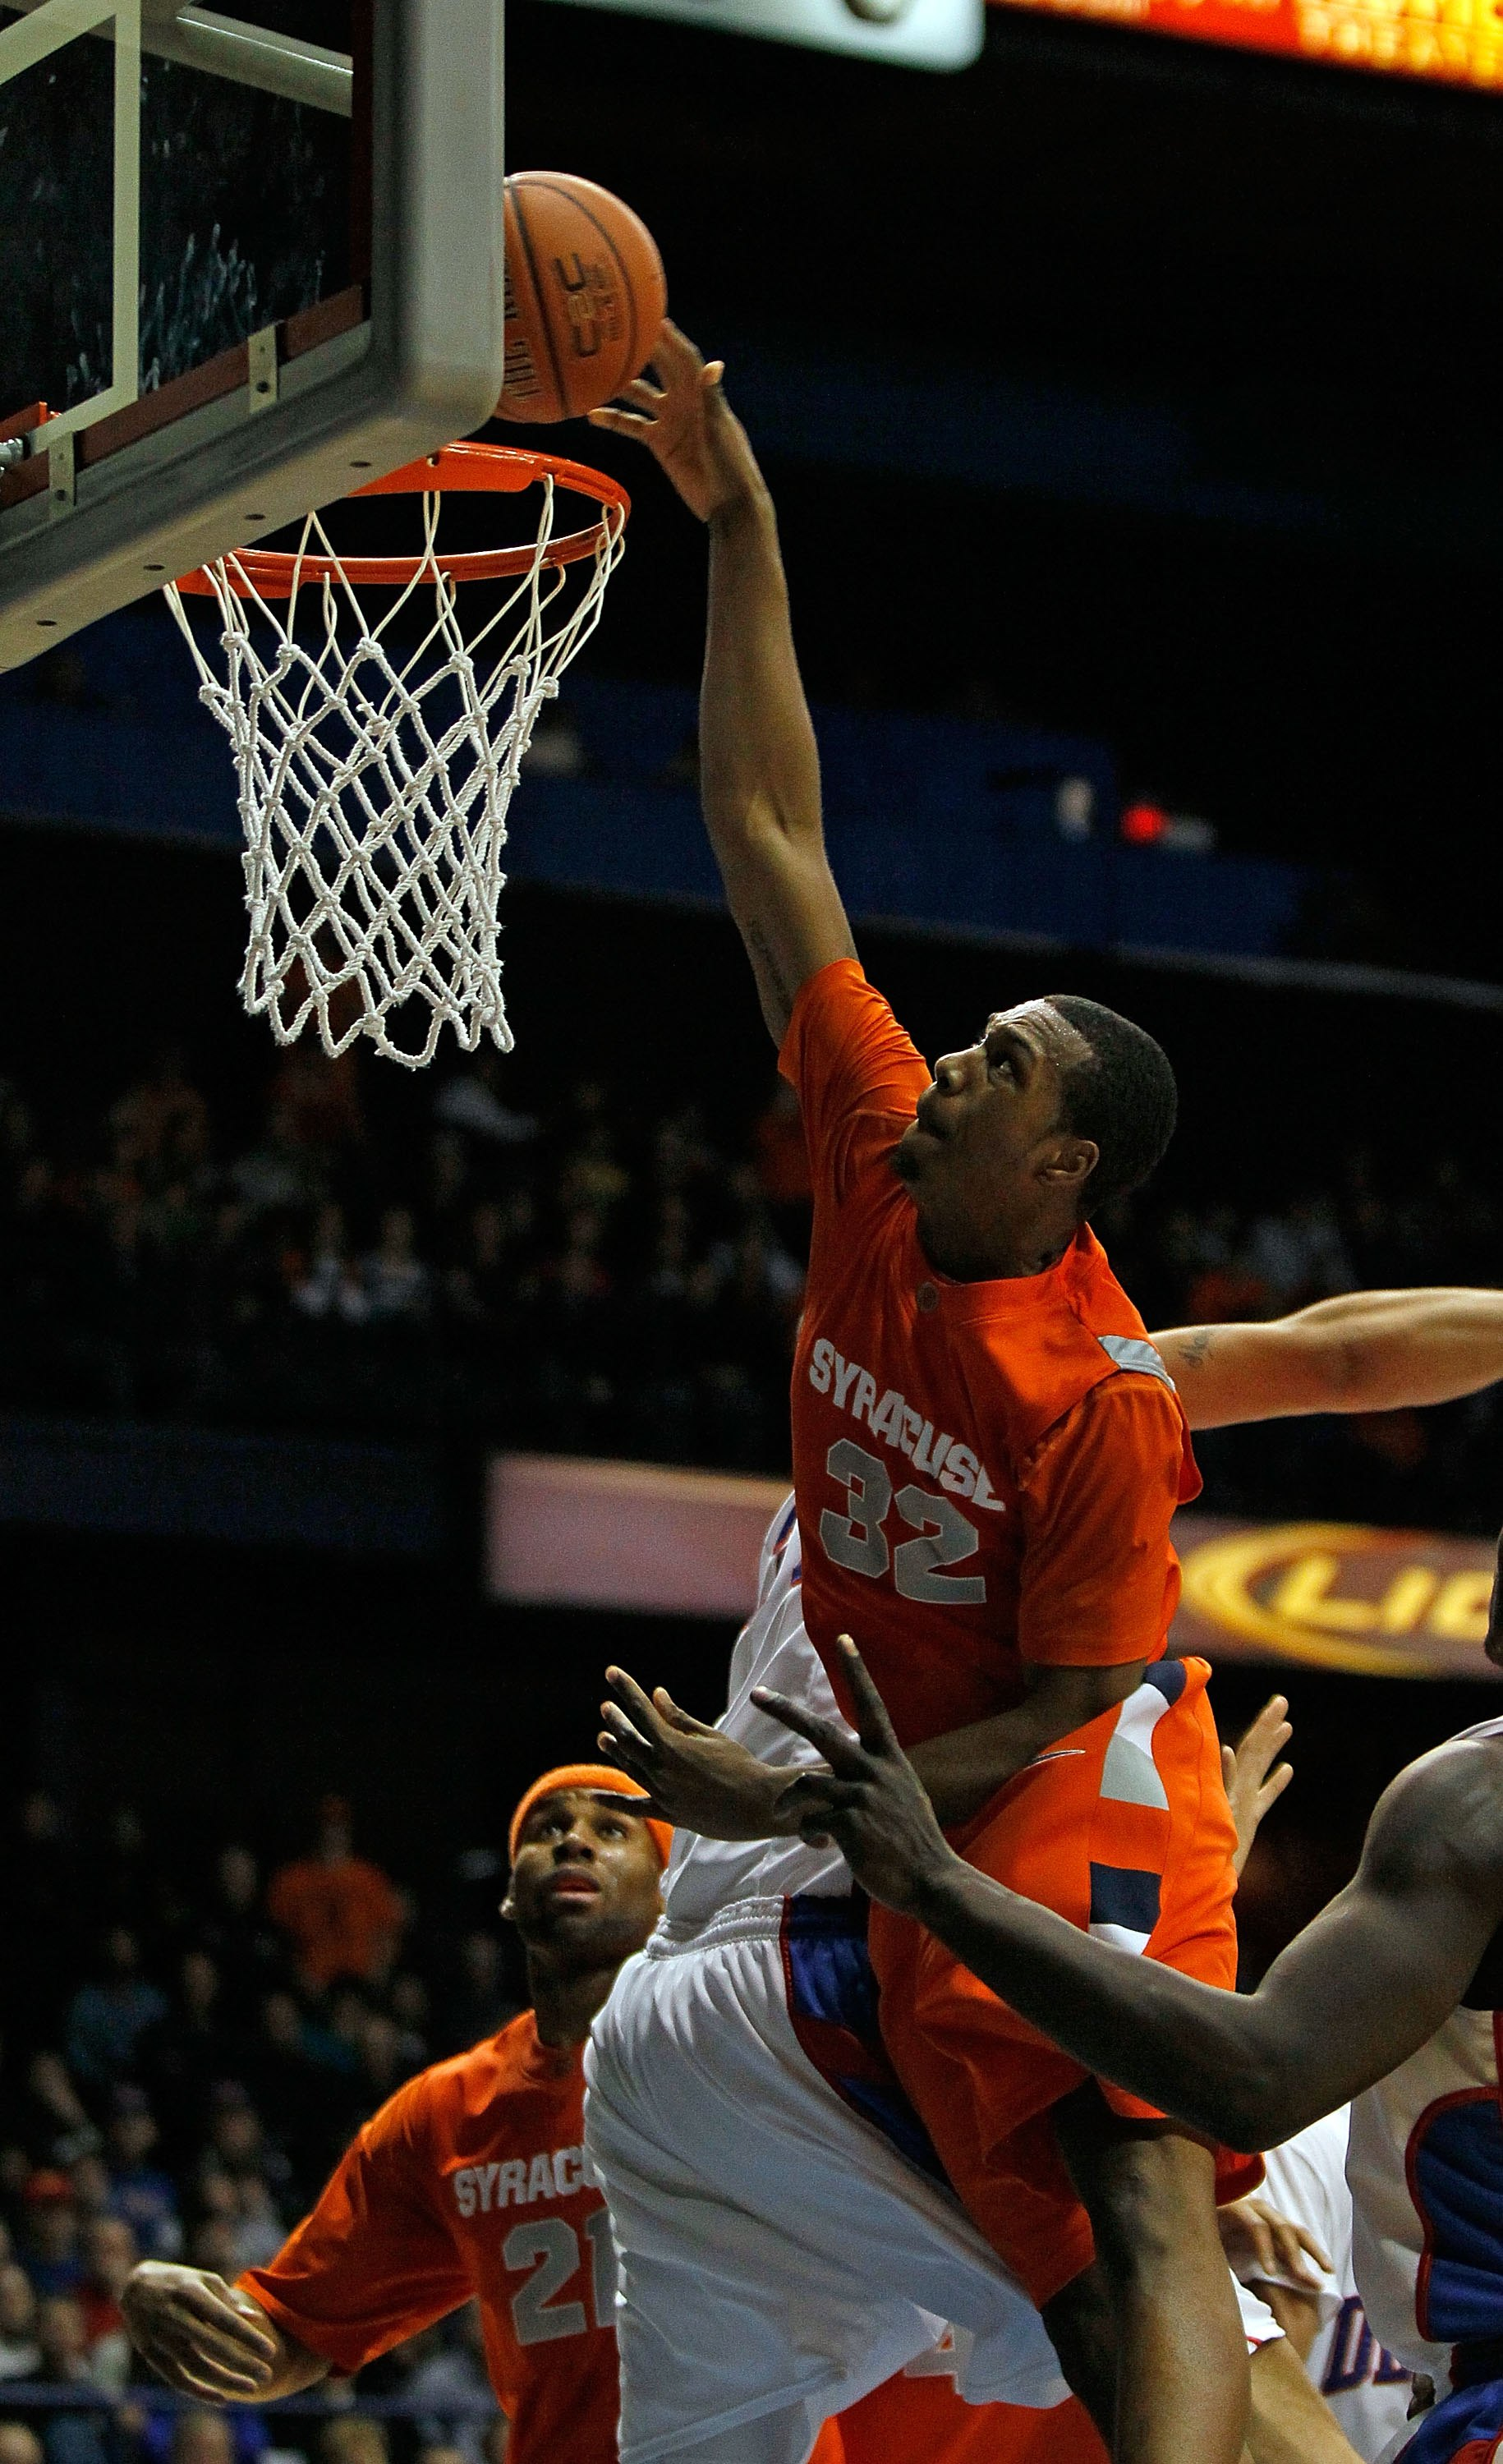 ROSEMONT, IL - JANUARY 30: Kris Joseph #32 of the Syracuse Orange puts up a shot over Kris Faber #33 of the DePaul Blue Demons at the Allstate Arena on January 30, 2010 in Rosemont, Illinois. Syracuse defeated DePaul 59-57. (Photo by Jonathan Daniel/Getty